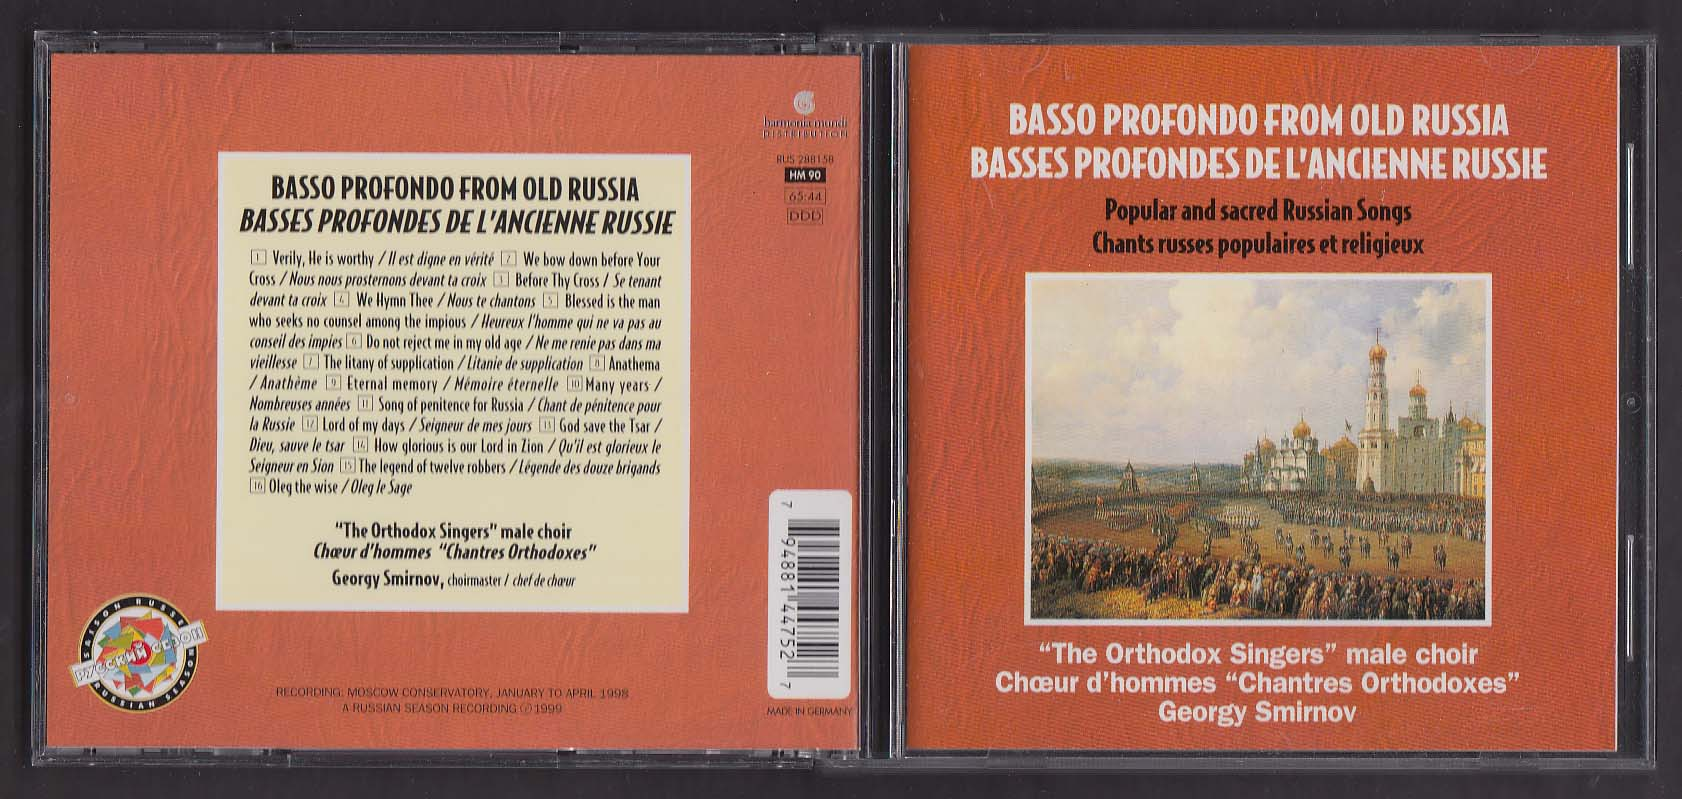 Image for Basso Profondo from Old Russia Orthodox Singers male choir Smirnov CD 1999